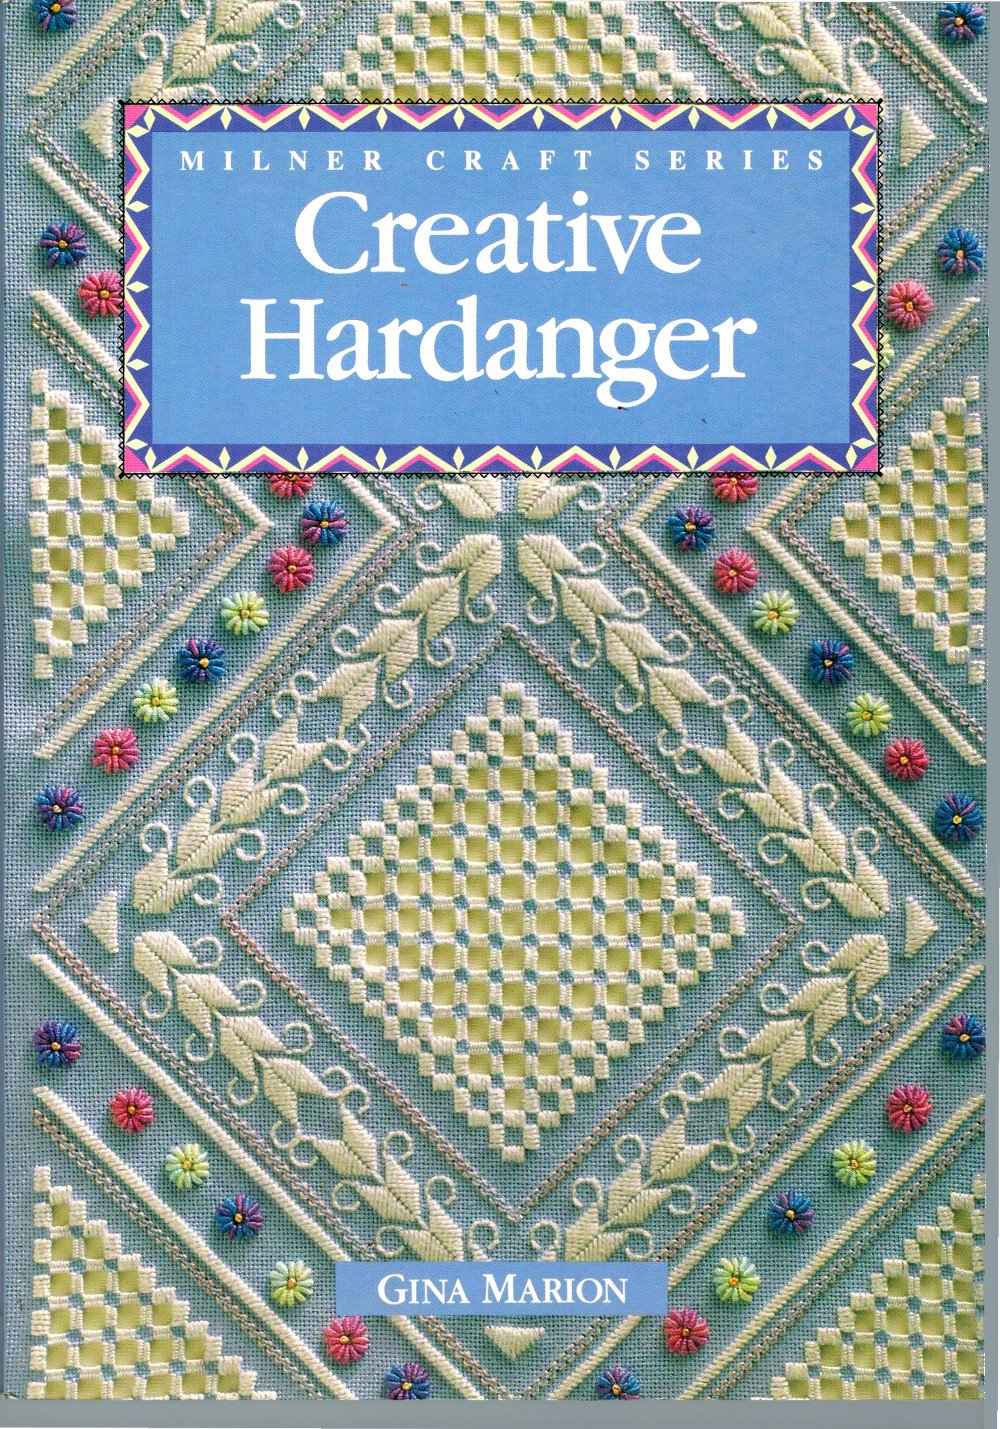 Creative Hardanger (Milner Craft Series)